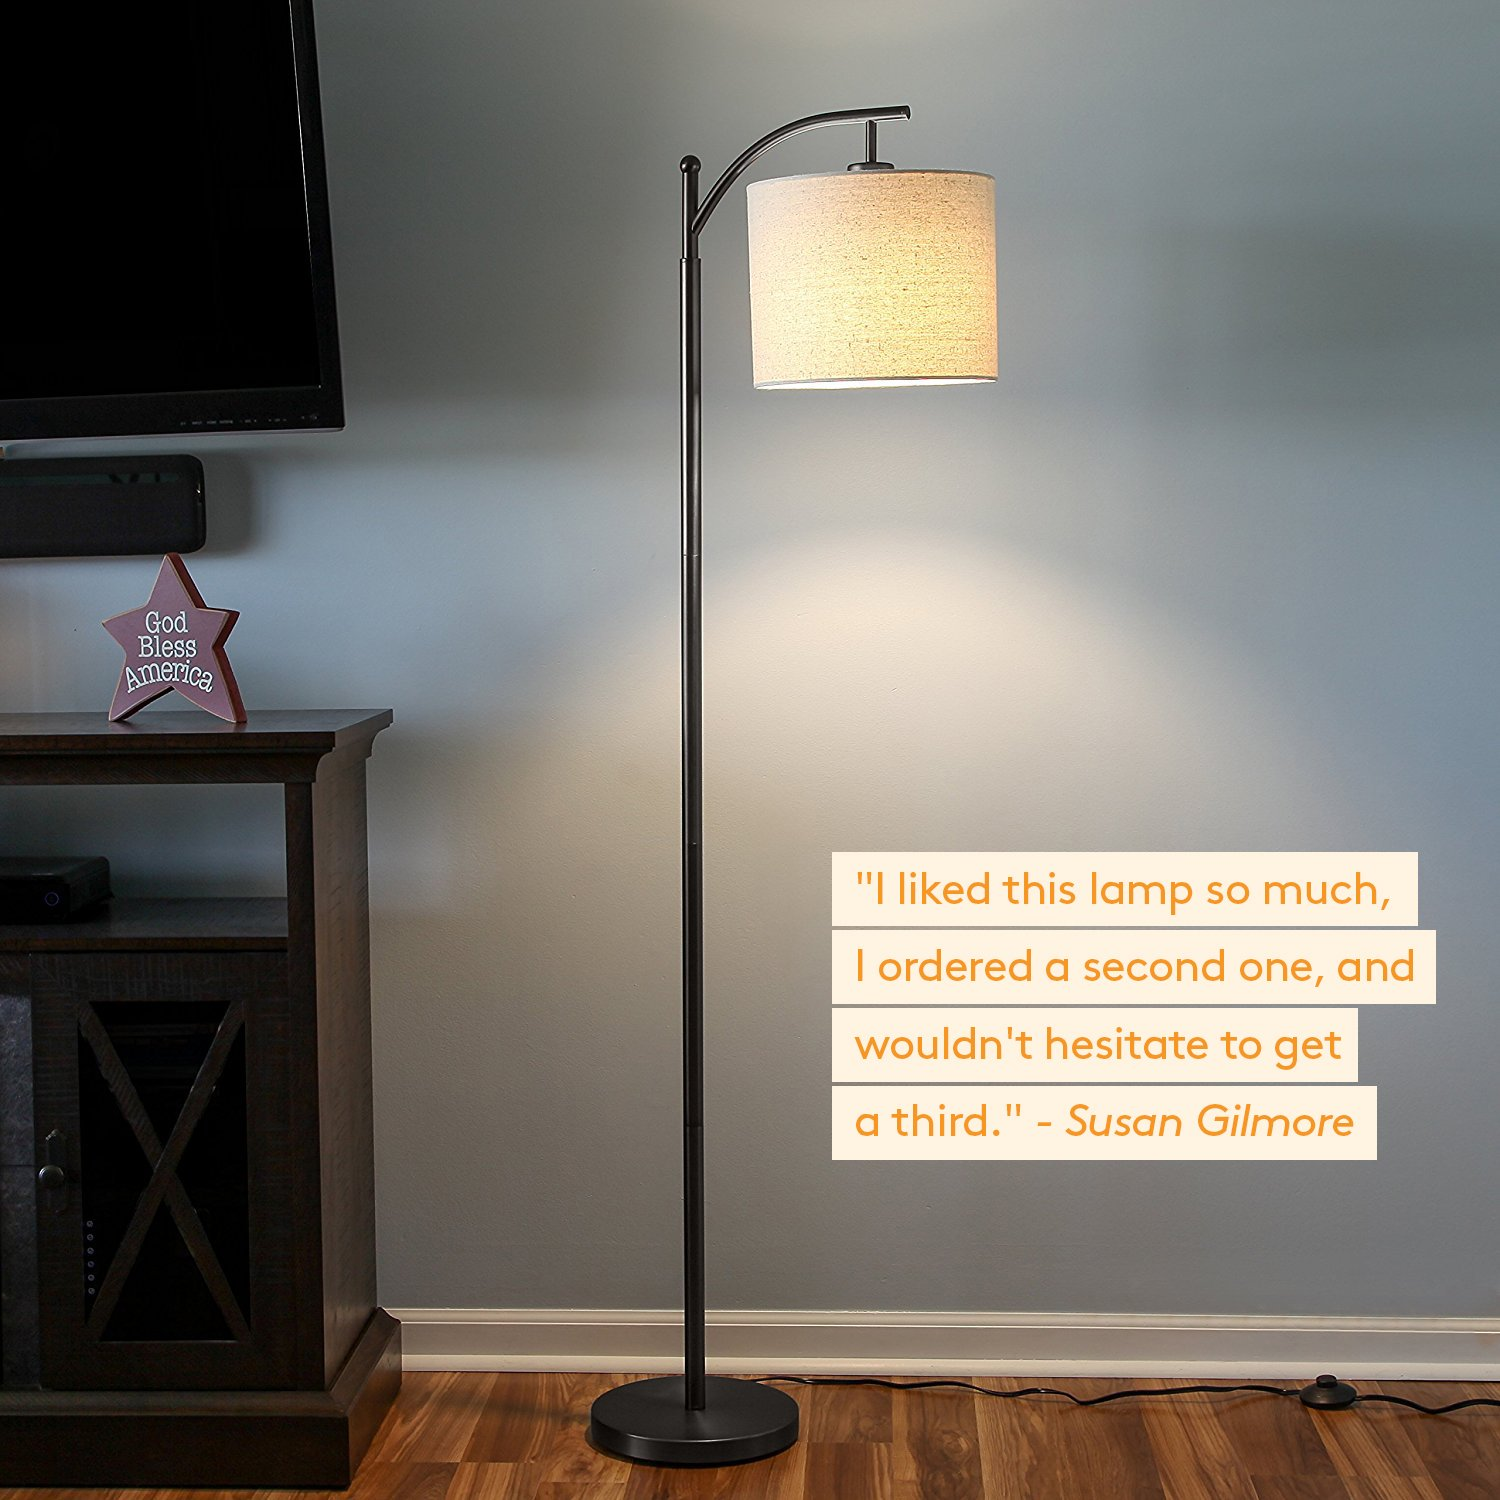 brightech montage led floor lamp classic arc floor lamp with hanging lamp shade tall industrial uplight lamp for living room family room - Floor Hanging Lamp